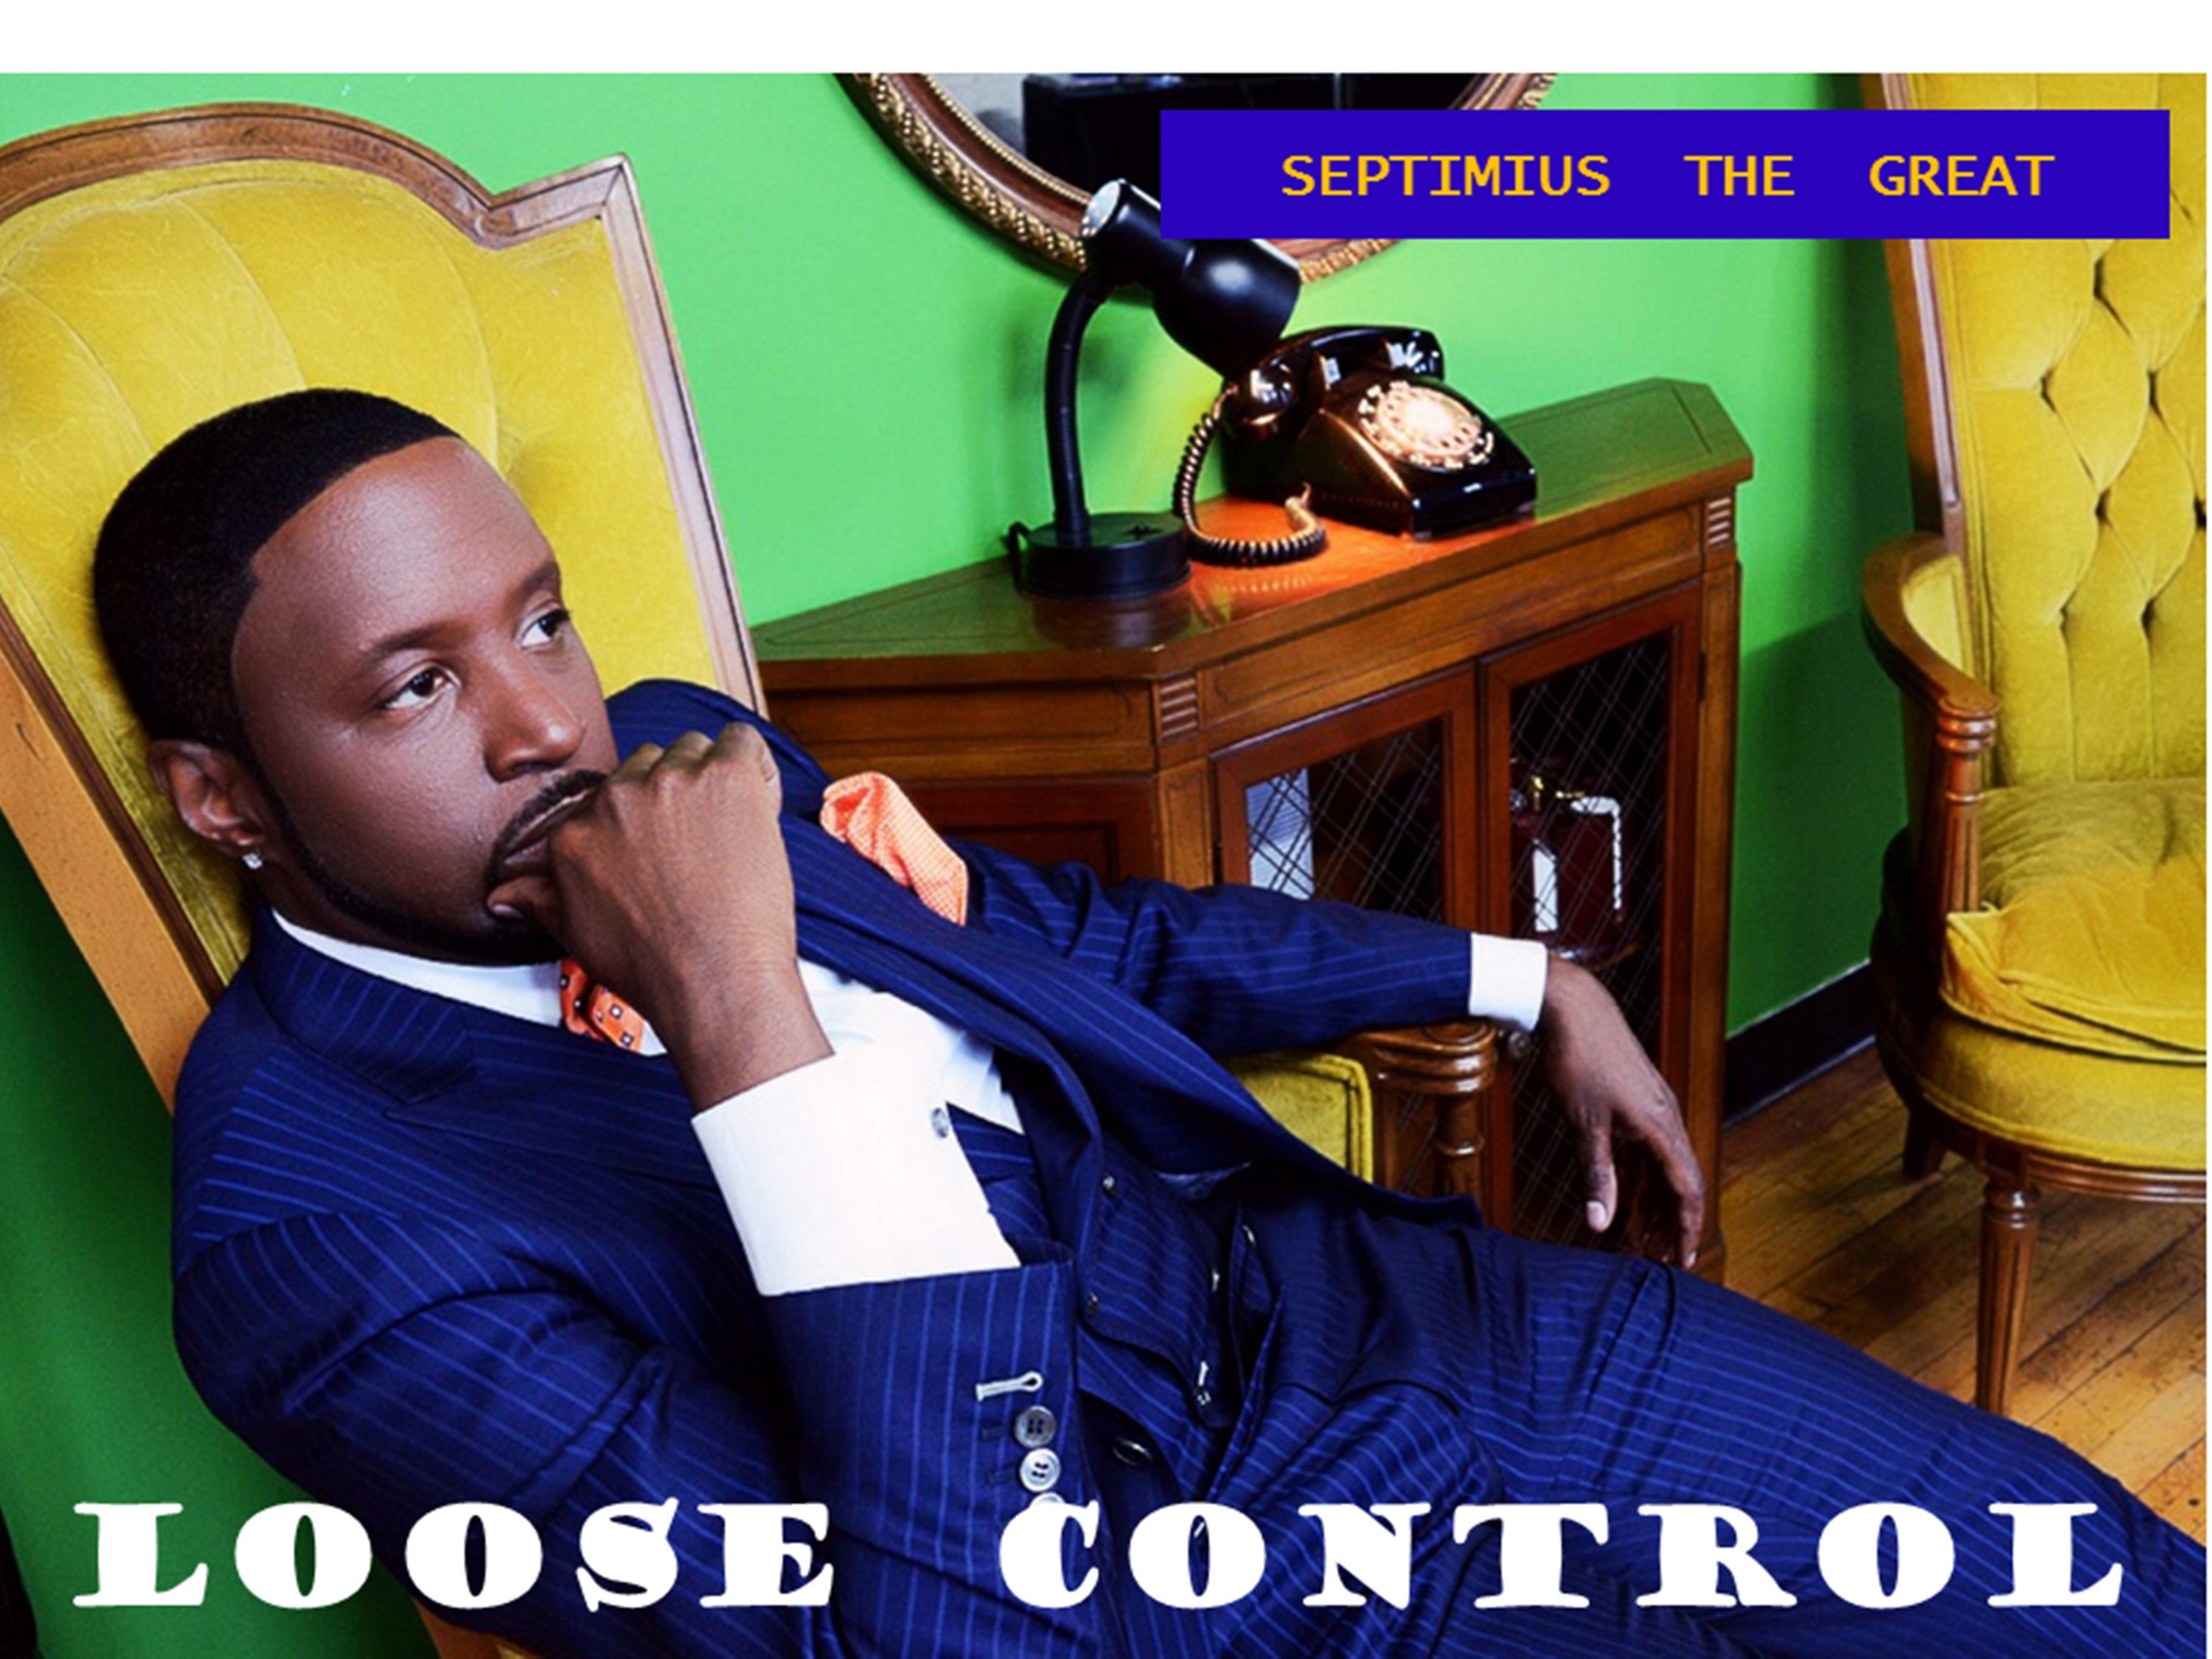 Loose Control - Septimius The Great